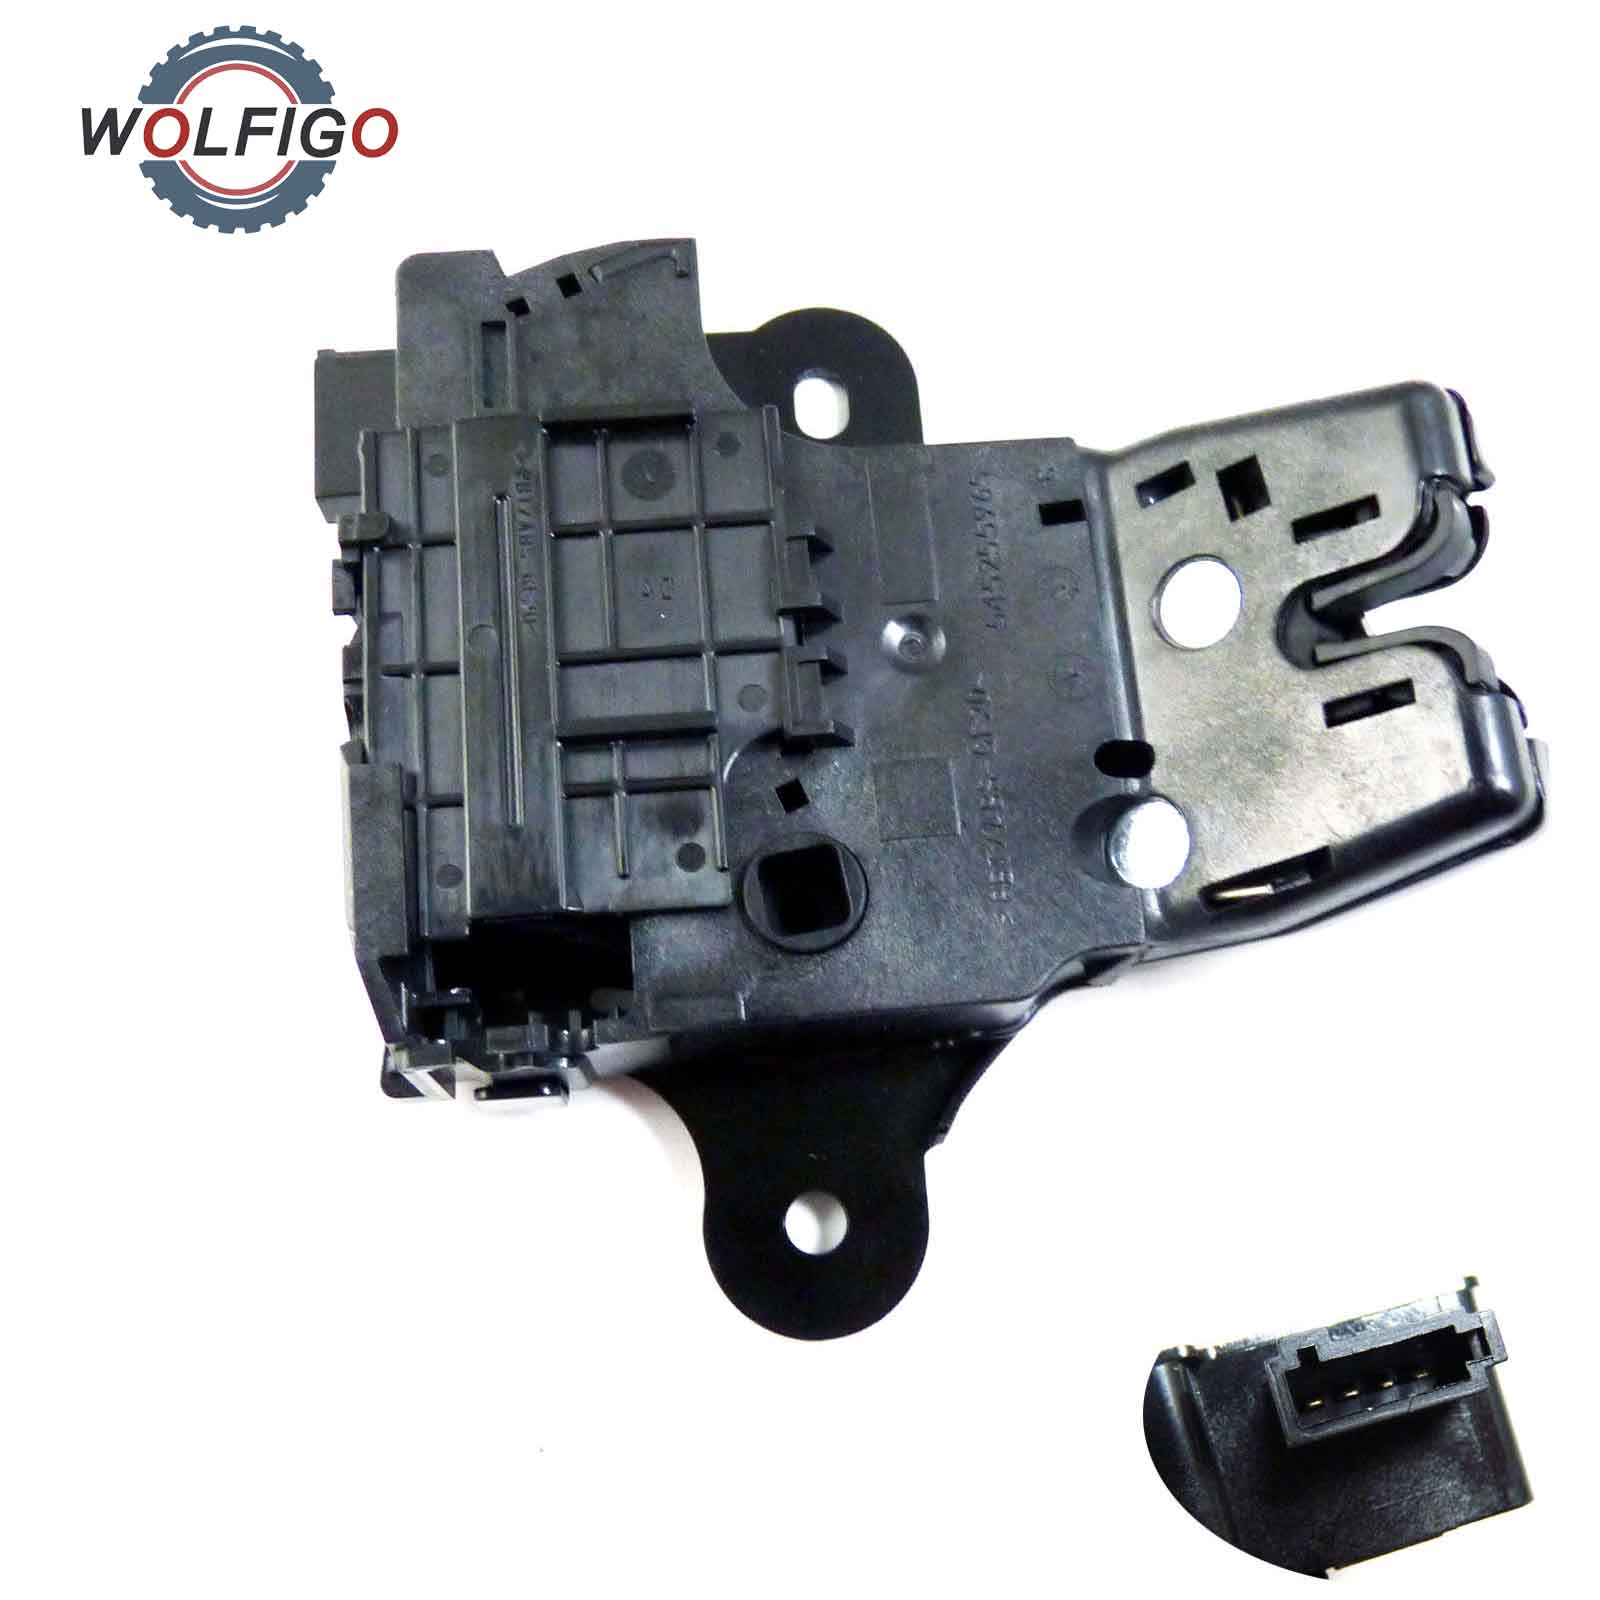 wolfigo trunk lock lid latch 13501988 for chery chevrolet malibu camaro sonic curze cadillac cts ats buick regal verano lacrosse in trunk lids parts from  [ 1600 x 1600 Pixel ]